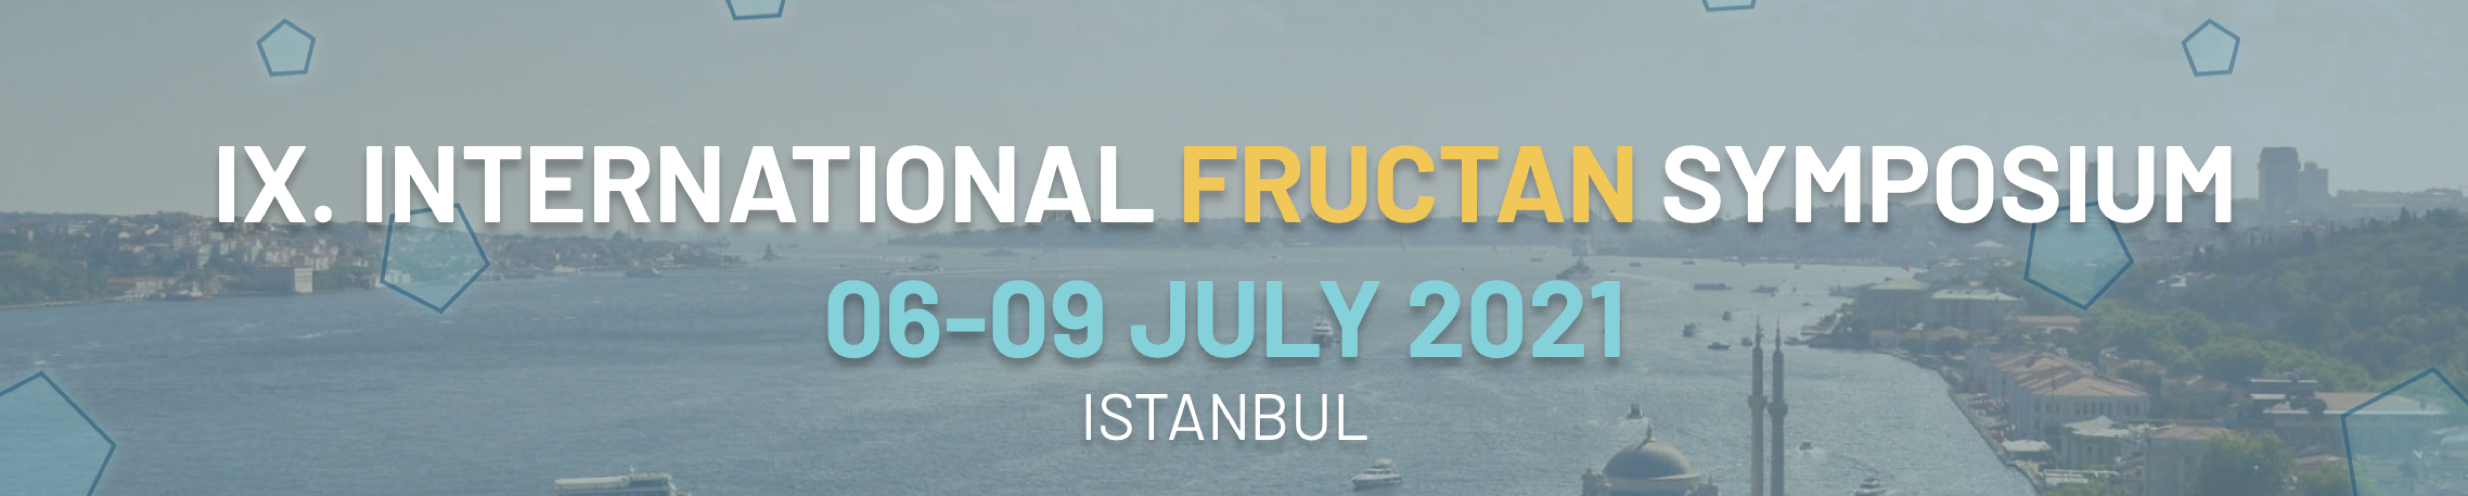 Evento - International Fructan Symposium - 2021